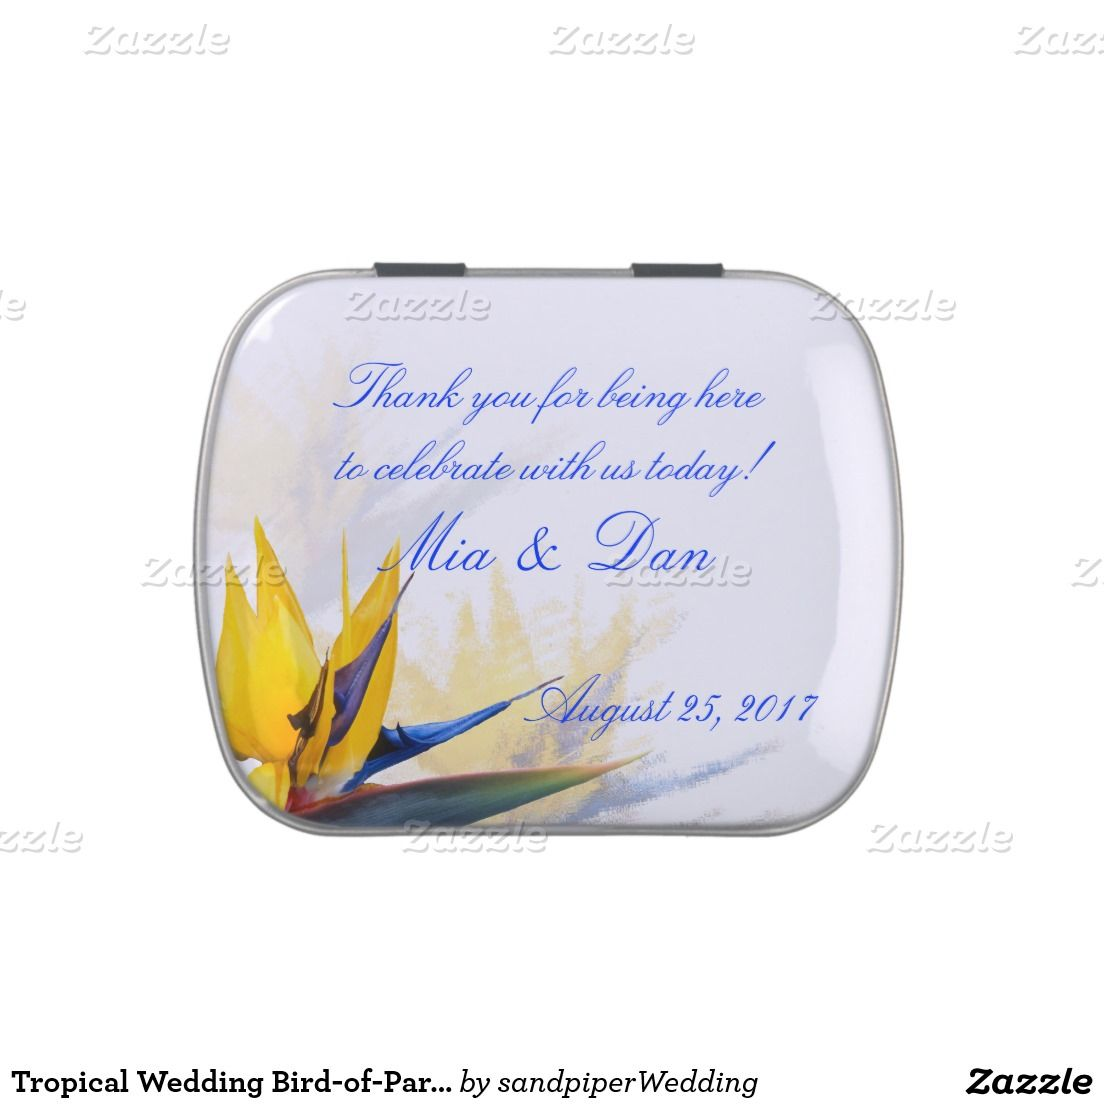 Tropical Wedding Bird-of-Paradise Candy Jelly Belly Tin | Mint tins ...